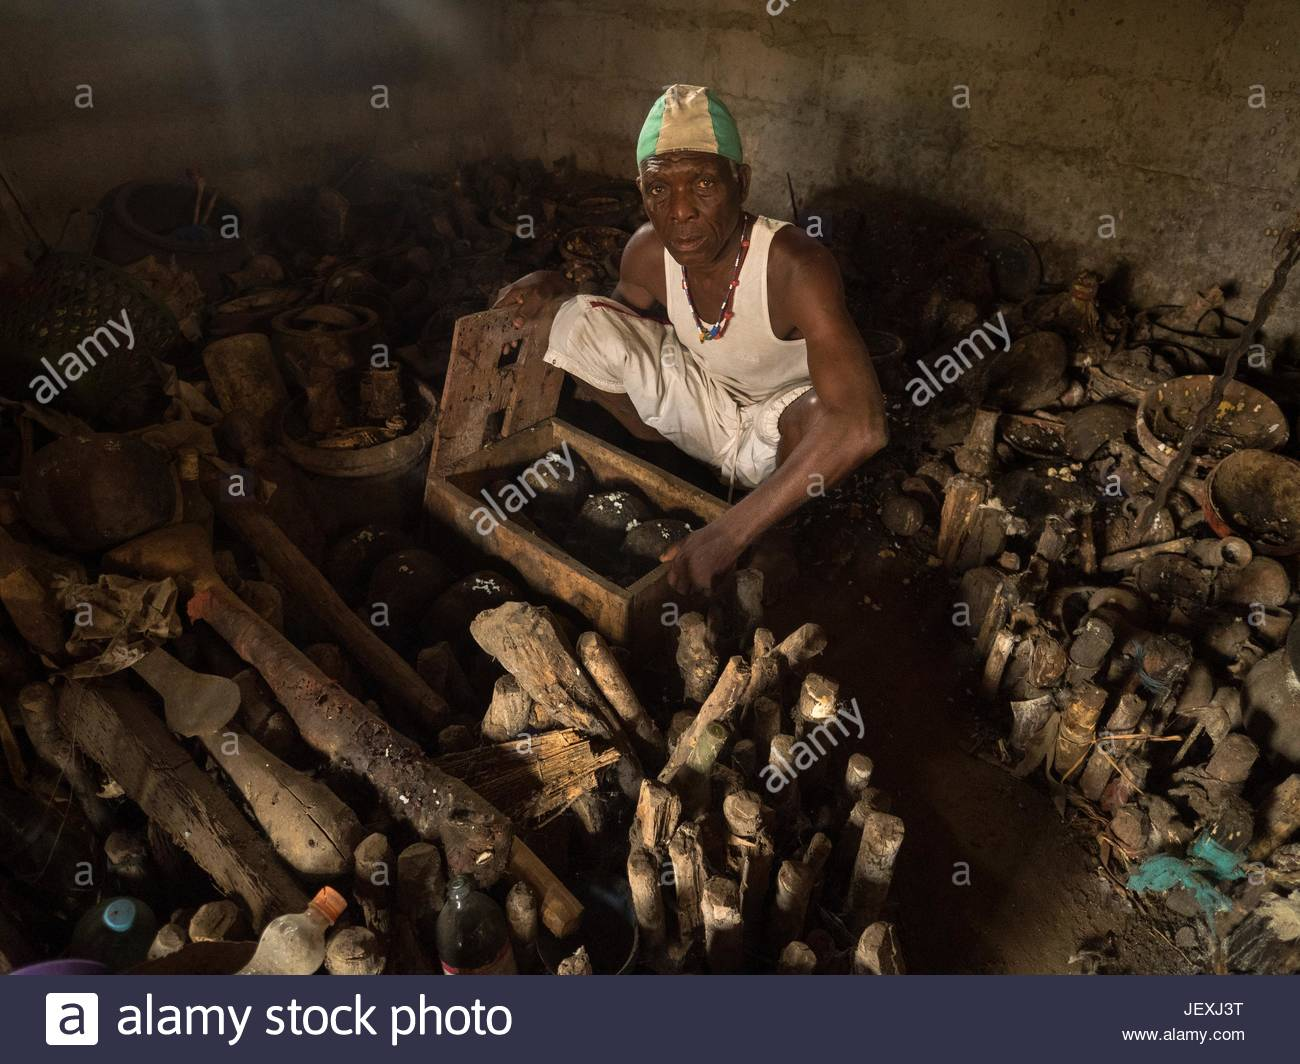 A houngan or voodoo priest sits in front of human skulls and